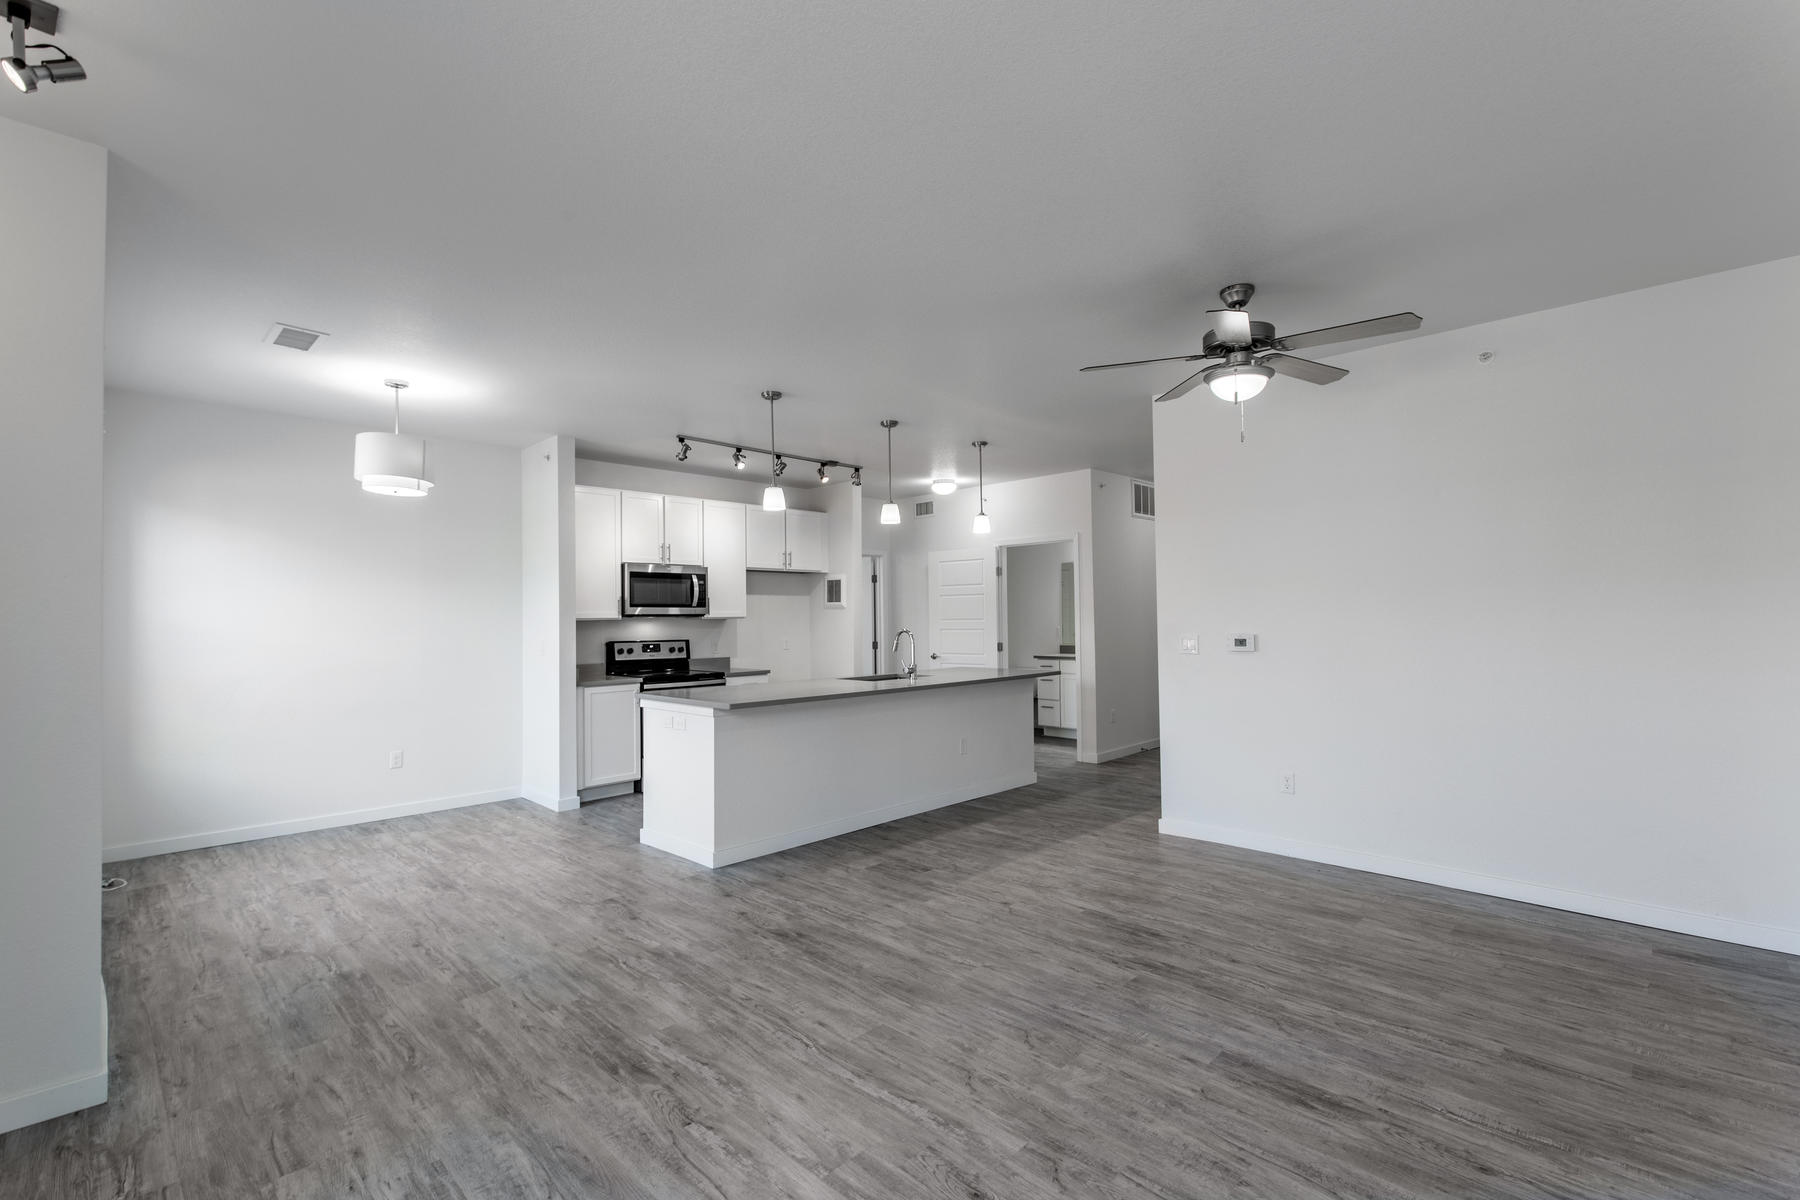 Additional photo for property listing at New model is now open. Please join us as we celebrate the next release 17353 Wilde Ln #102 C, Bldg 6 Parker, Colorado 80134 United States